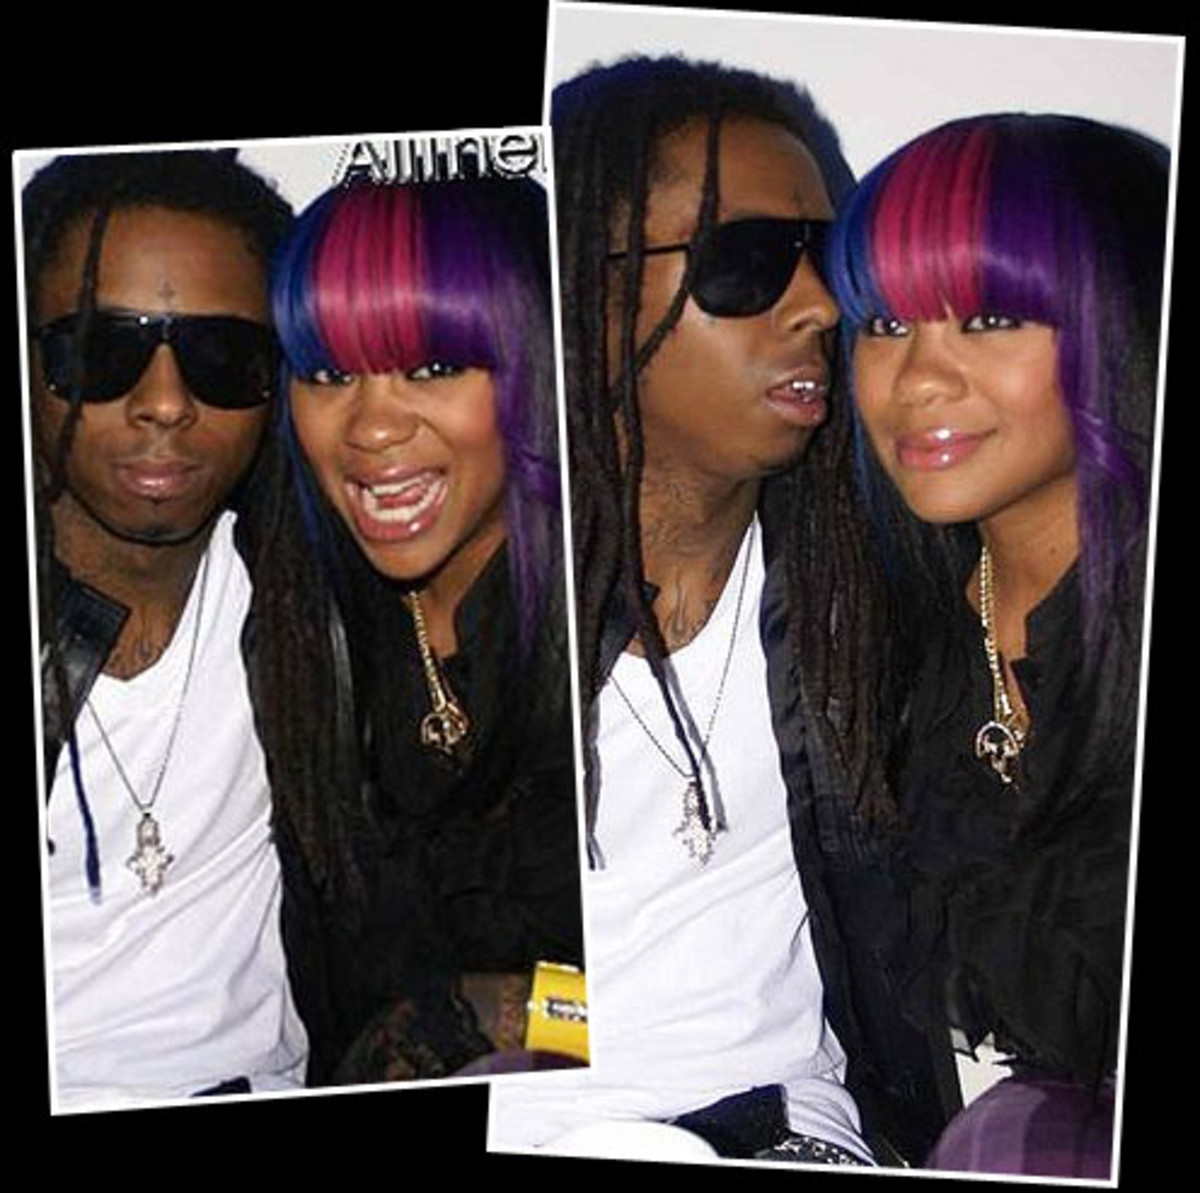 Lil Wayne And Nivea Looking Happy